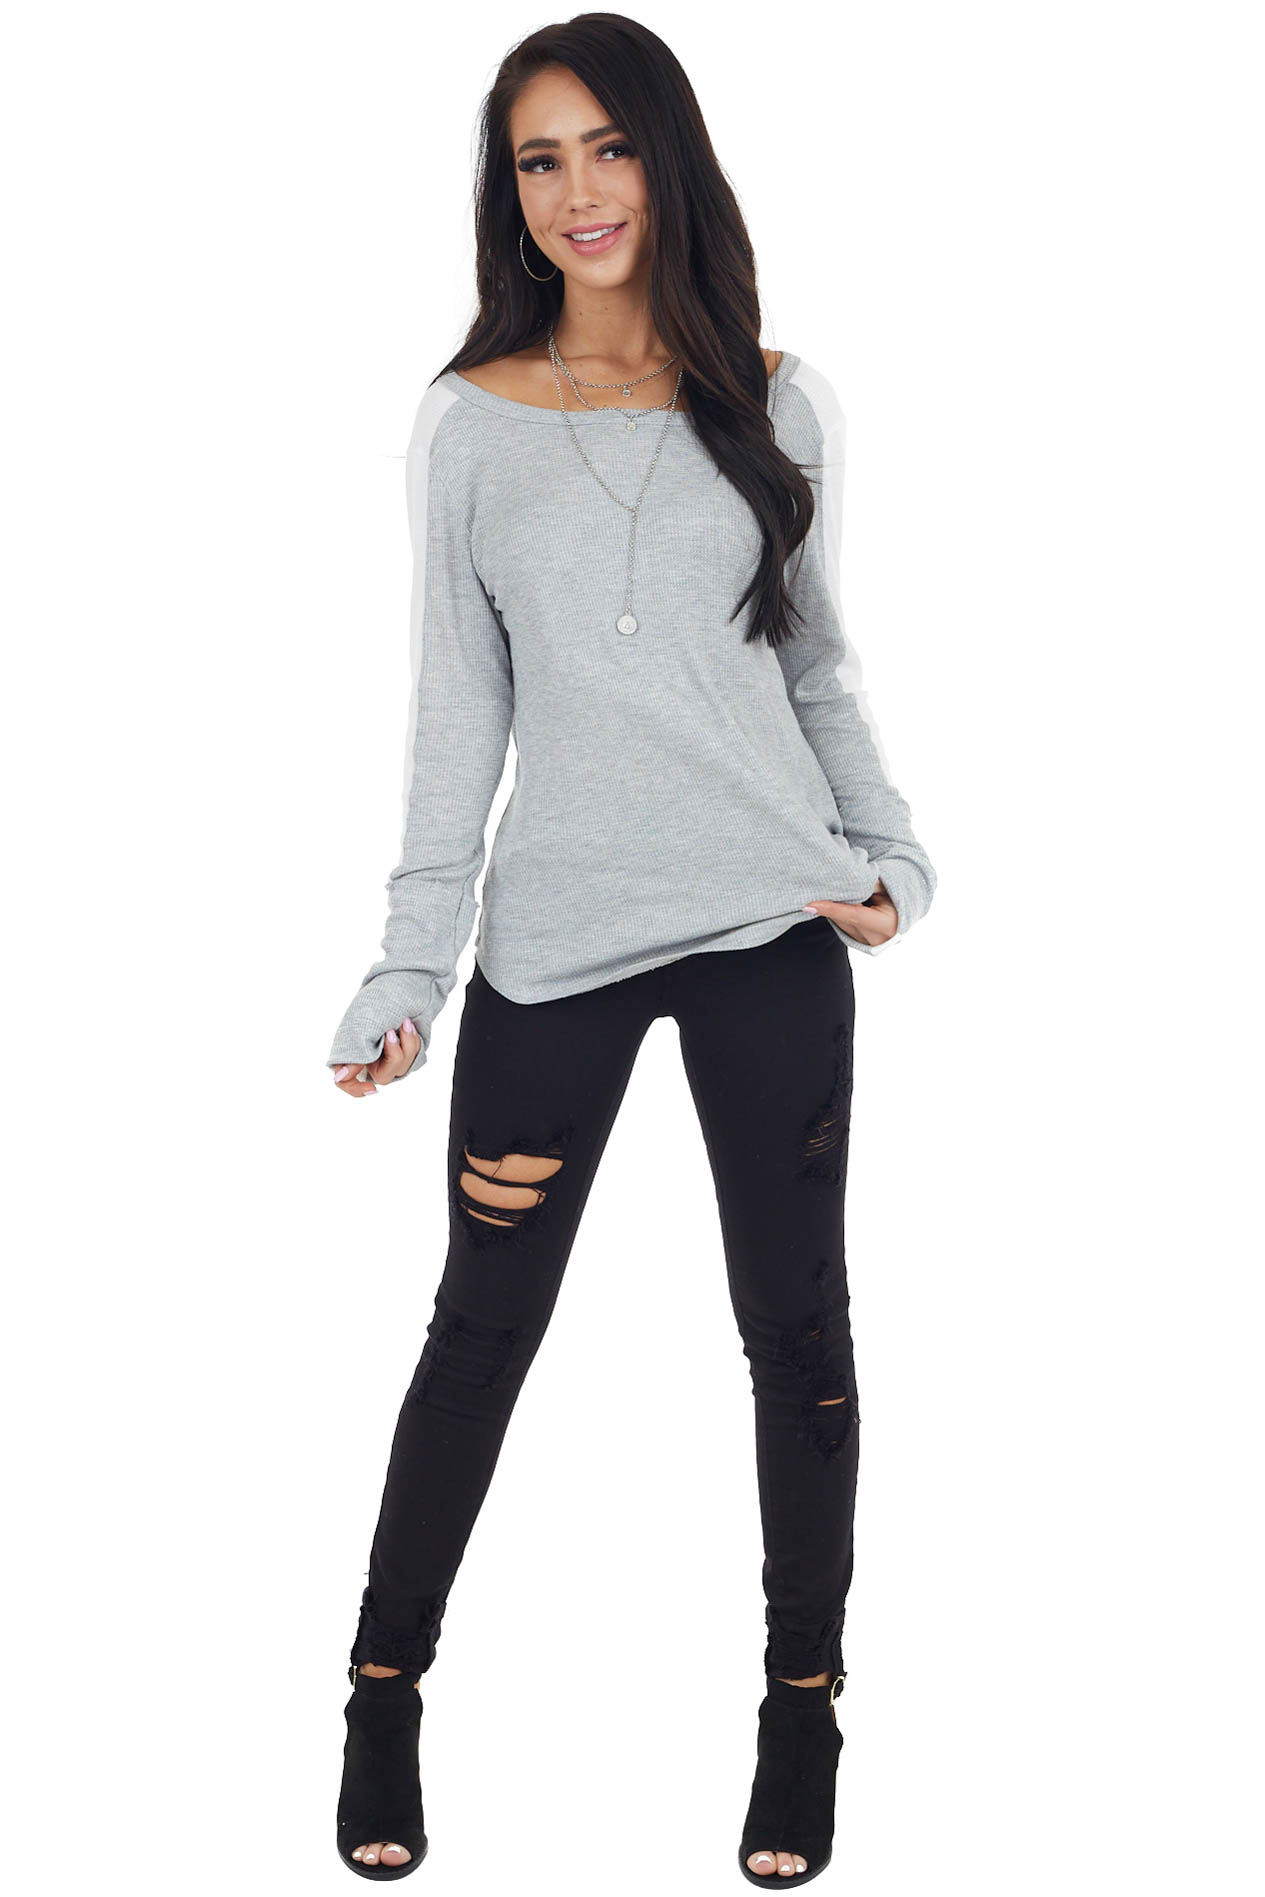 Dove Grey Waffle Knit Long Sleeve Top with White Contrast